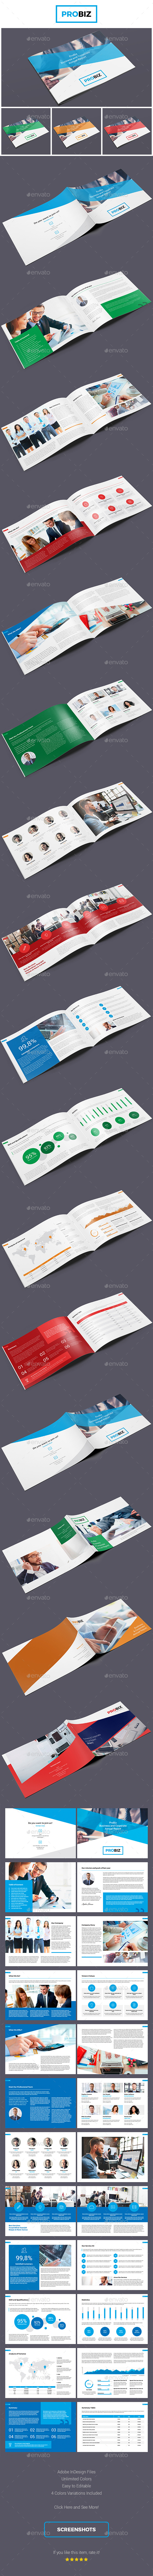 ProBiz – Business and Corporate Annual Report Horizontal - Corporate Brochures